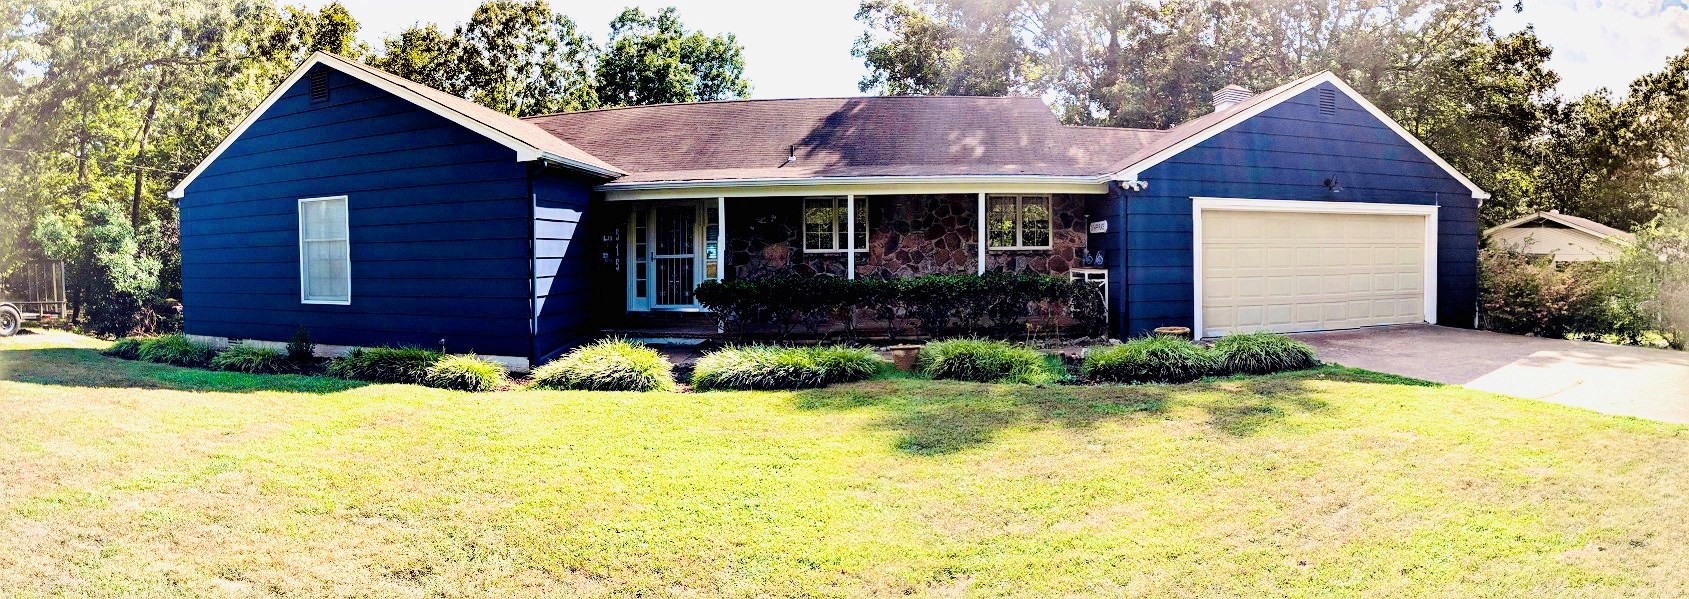 LAKE HOME FOR SALE IN HORSESHOE BEND, AR!